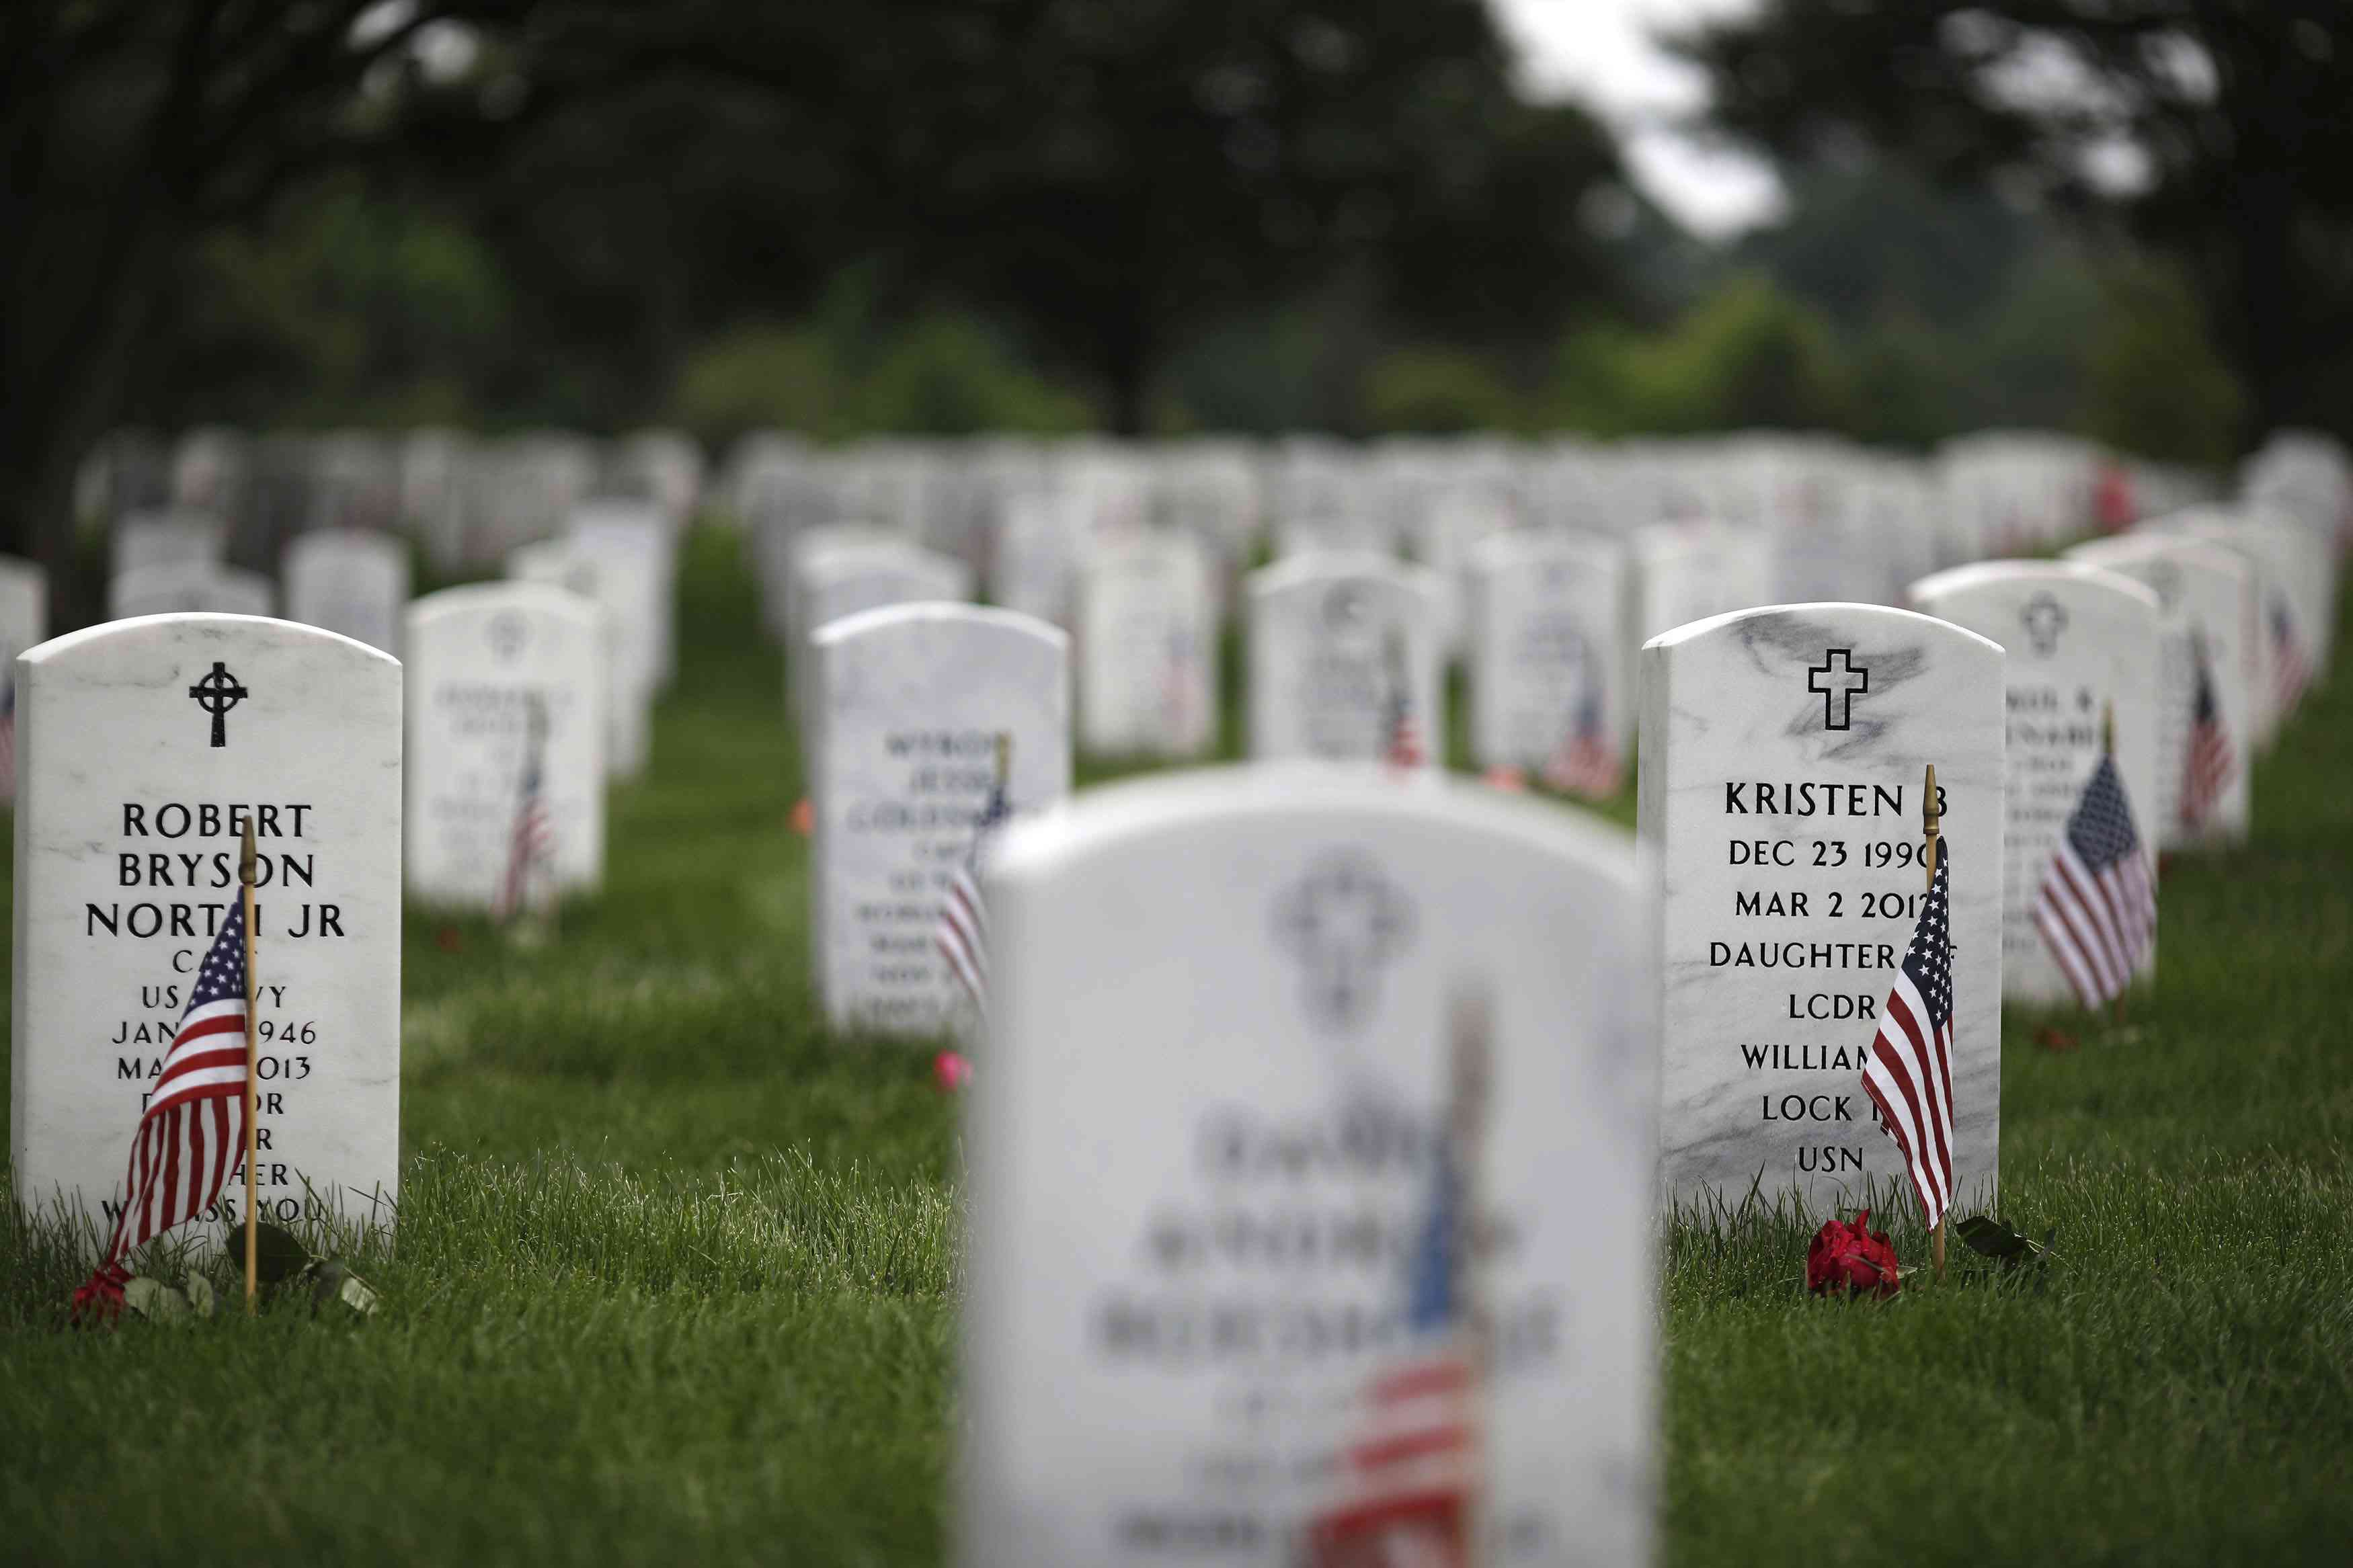 Memorial Day Visitors Pay Their Respects To The Fallen At Arlington Nat'l Cemetery